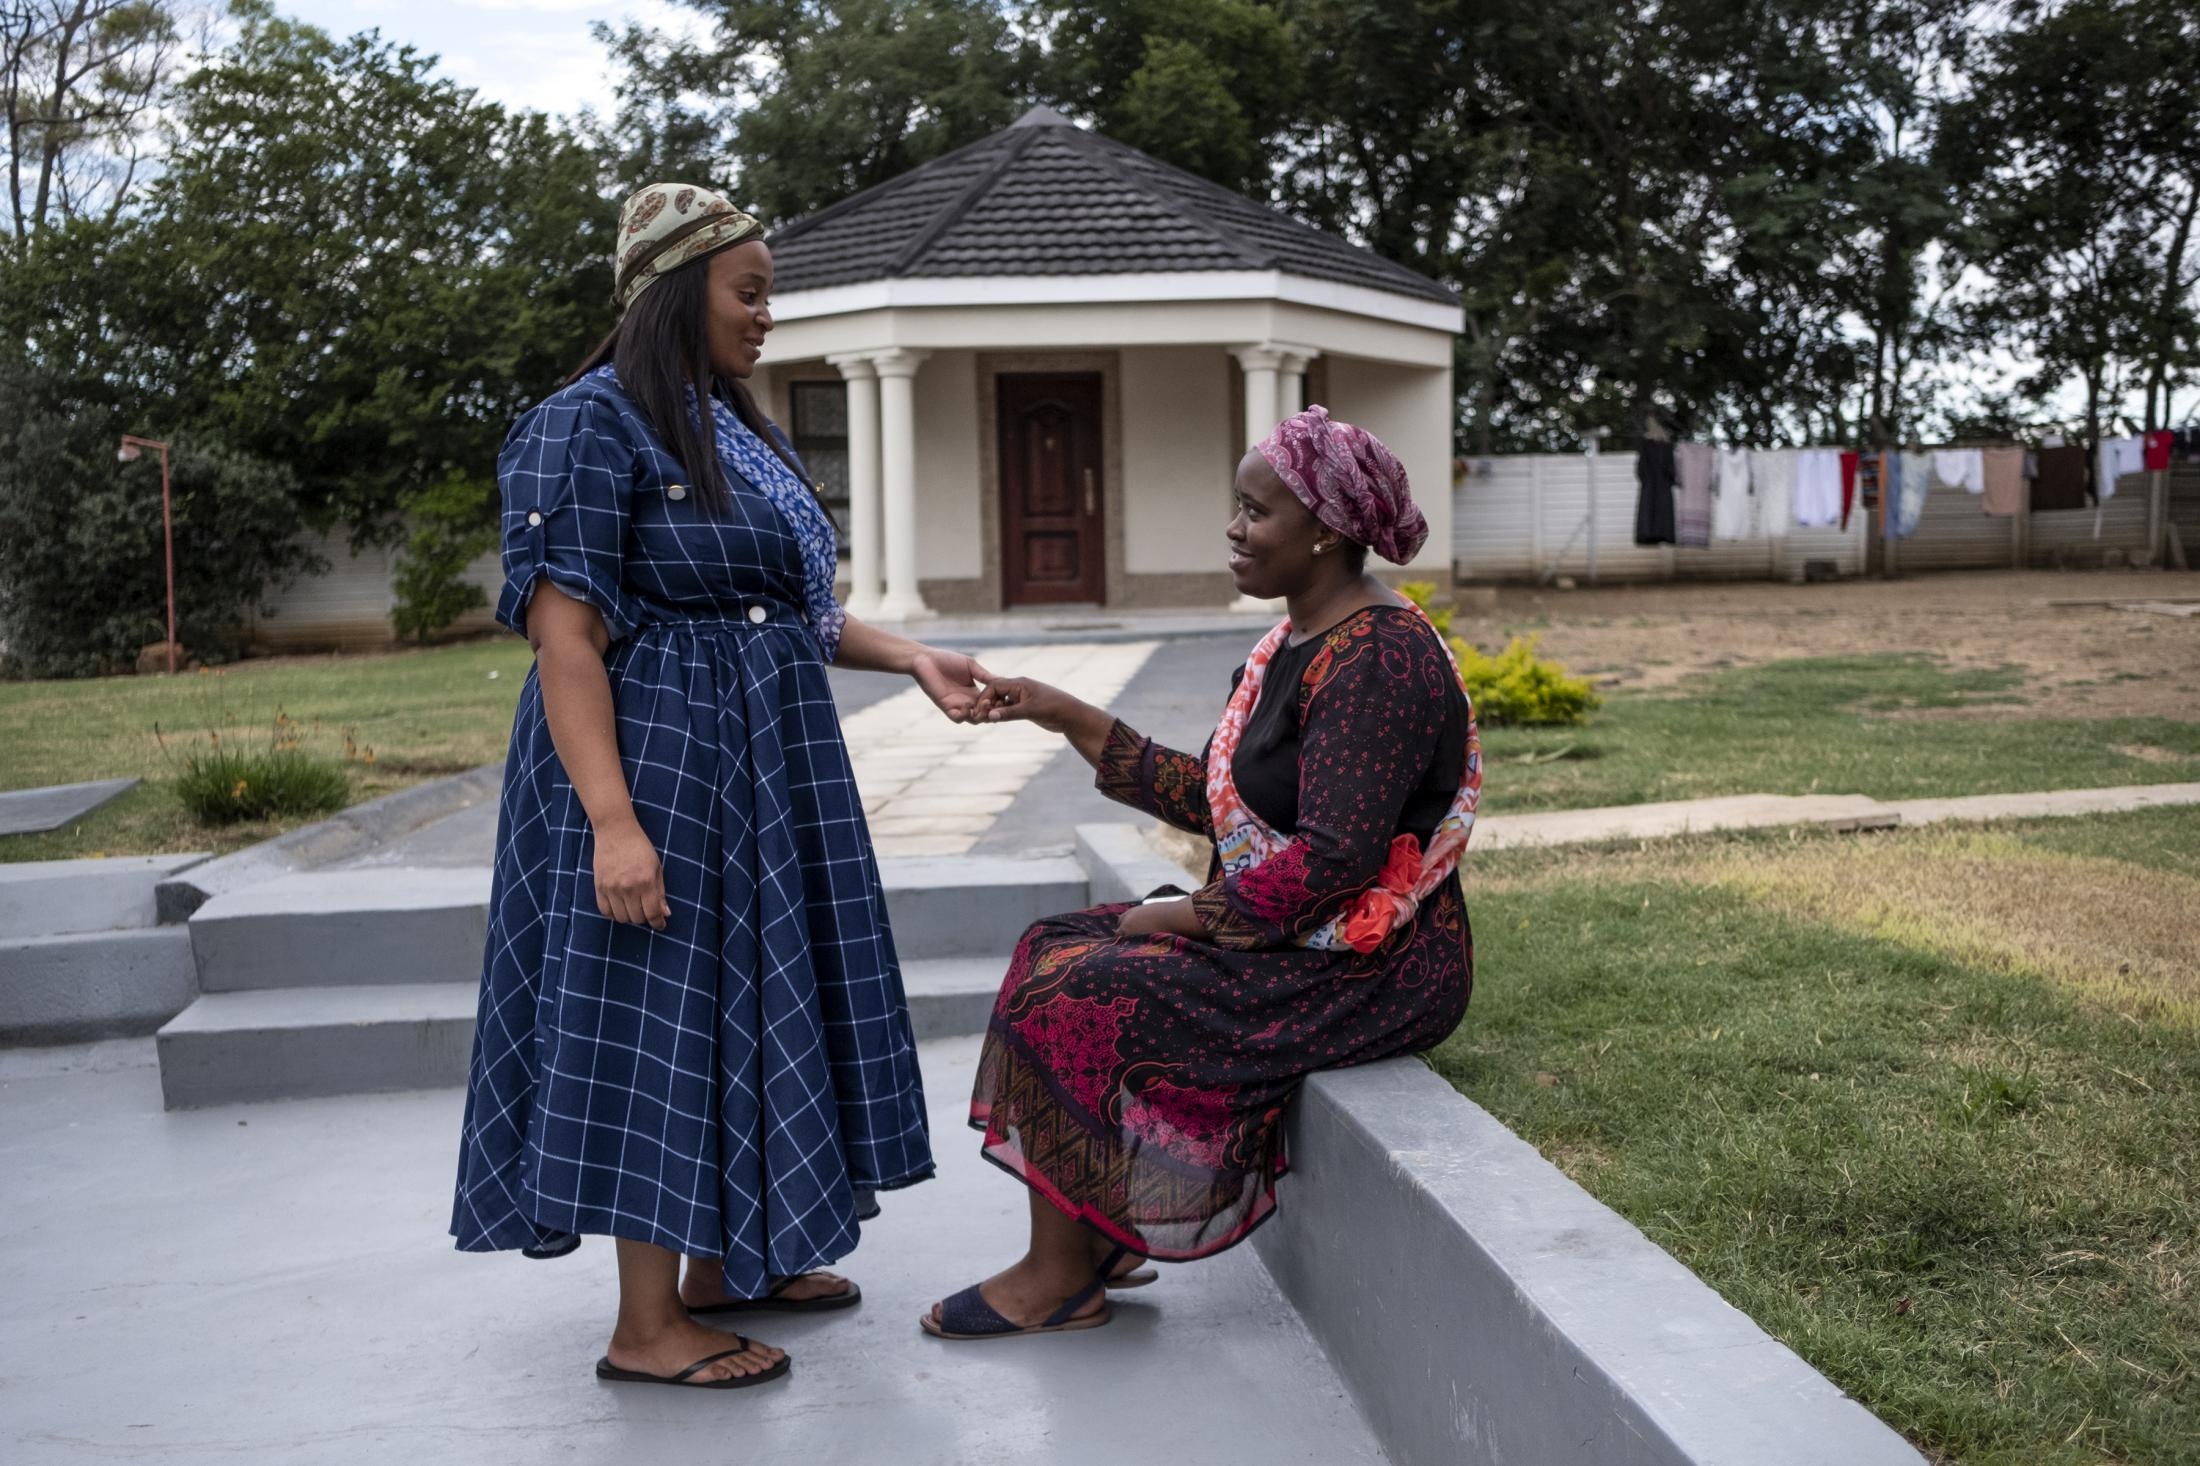 18 February 2020: Women of the Shabalala household chat to each other outside the home after the memorial service for Ladysmith Black Mambazo founder Joseph Shabalala in Ladysmith Kwa-Zulu Natal.